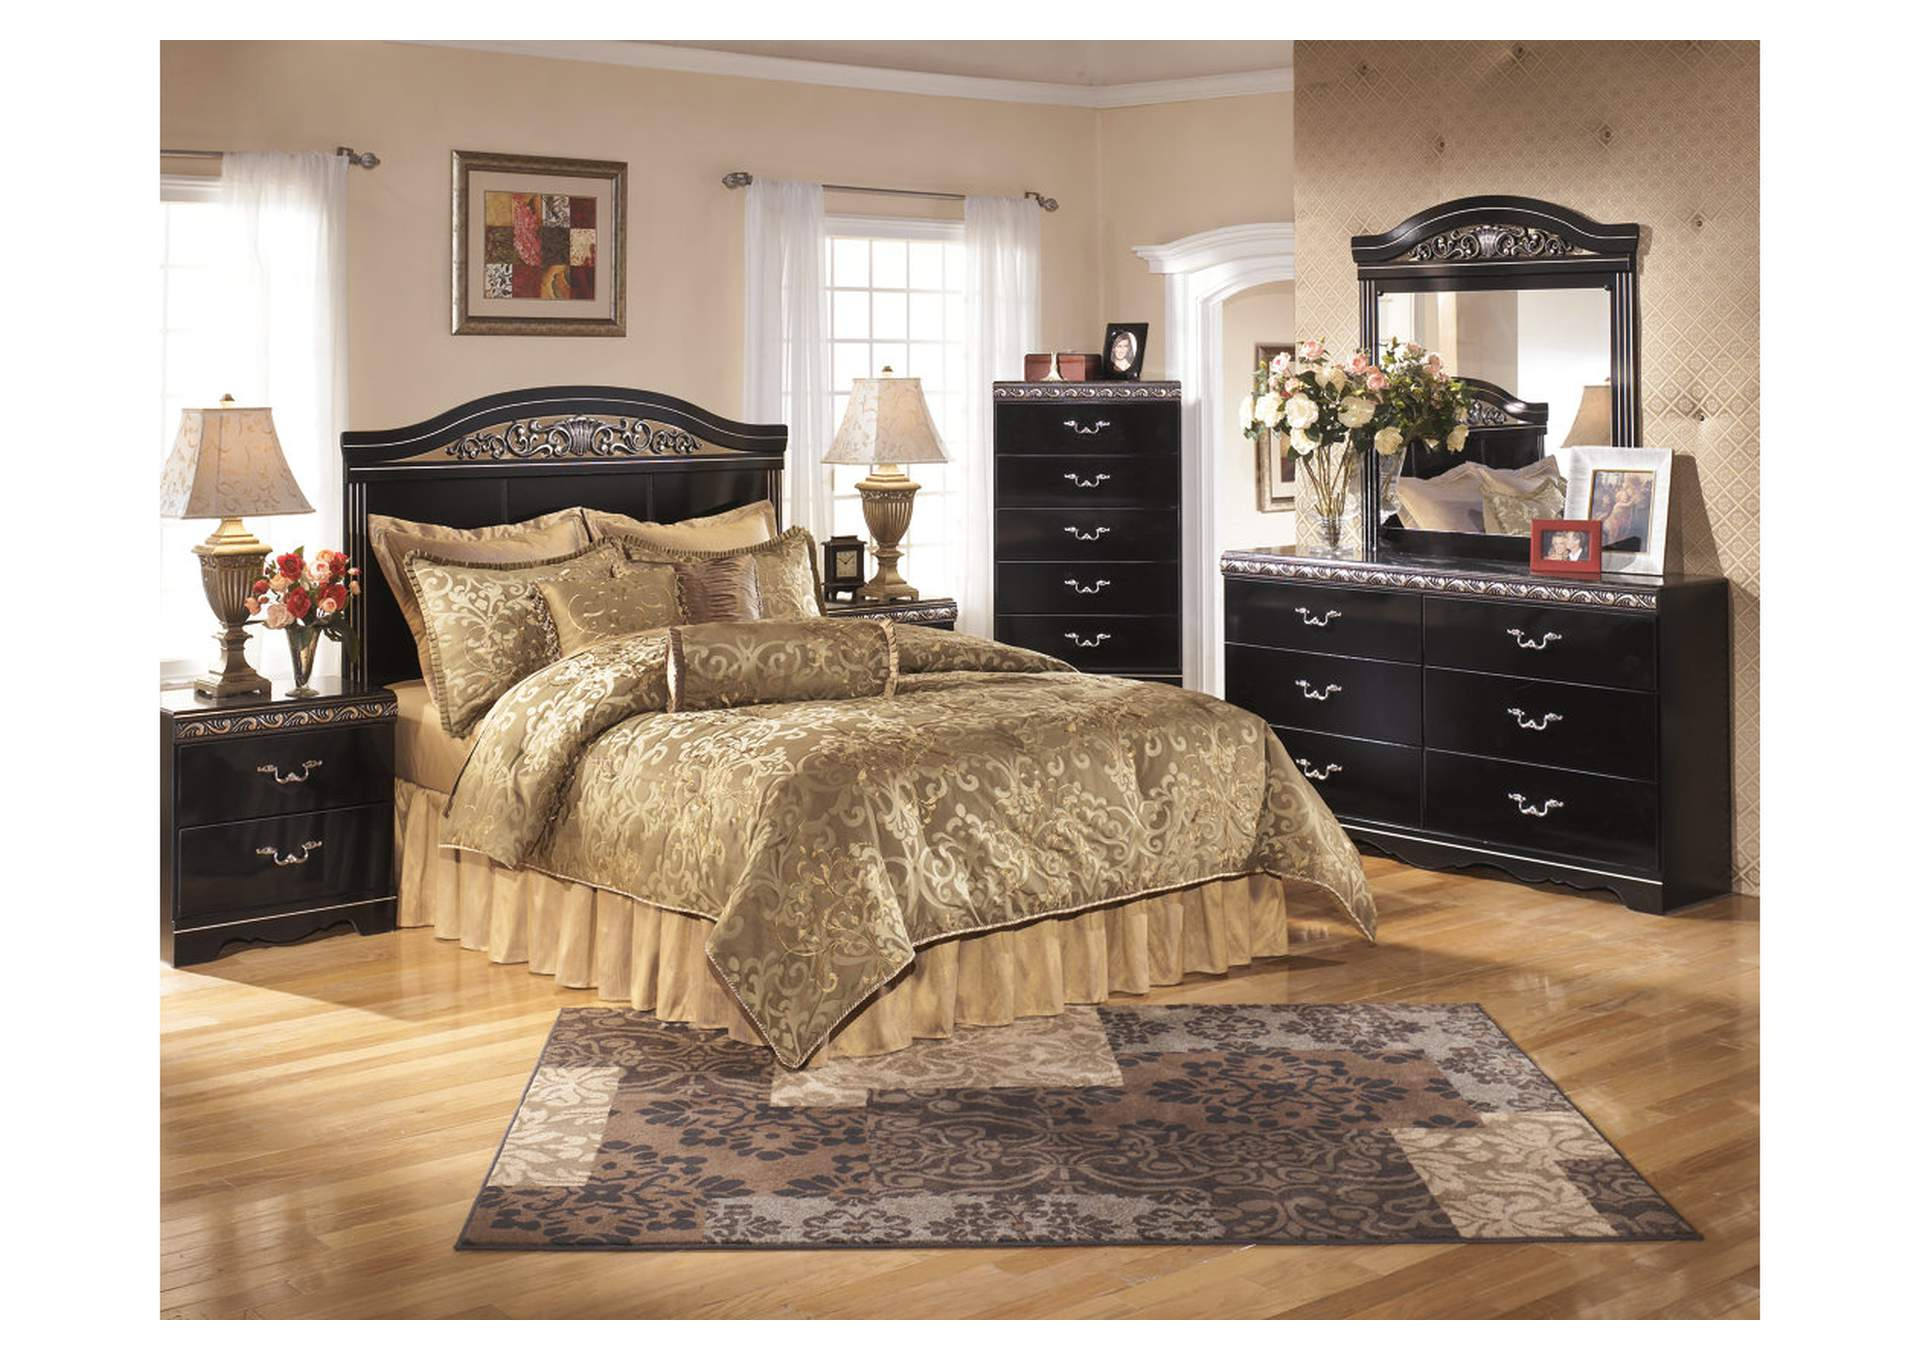 Constellations Queen/Full Panel Headboard, Dresser, Mirror & Nightstand,Signature Design by Ashley